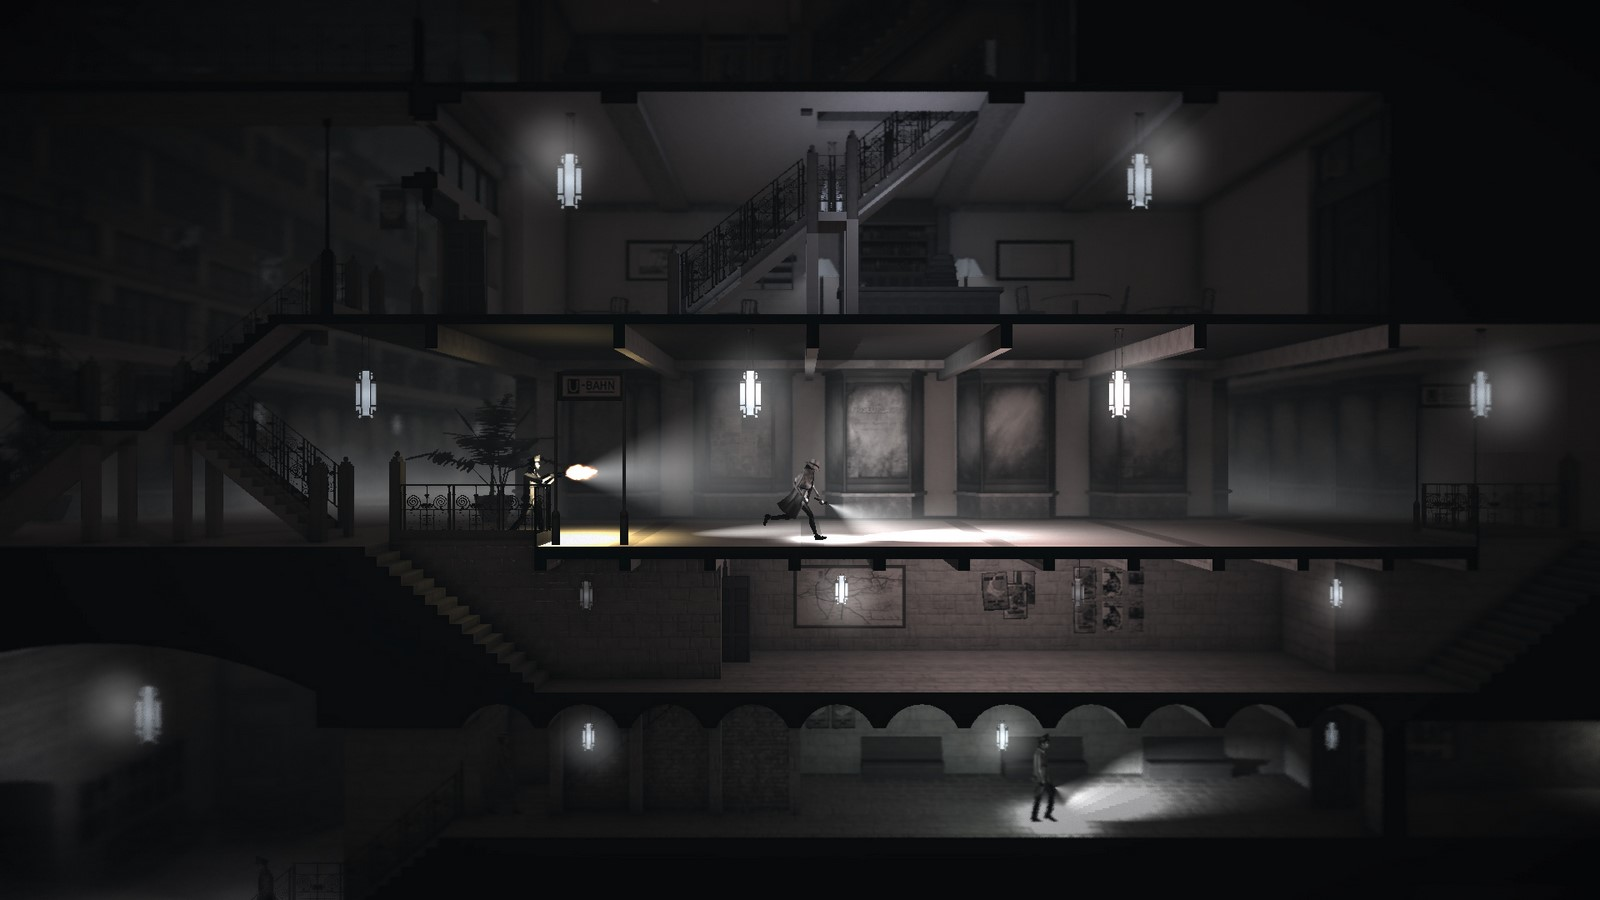 8 More Architectural games to help you burn through your creative block - Sheet2